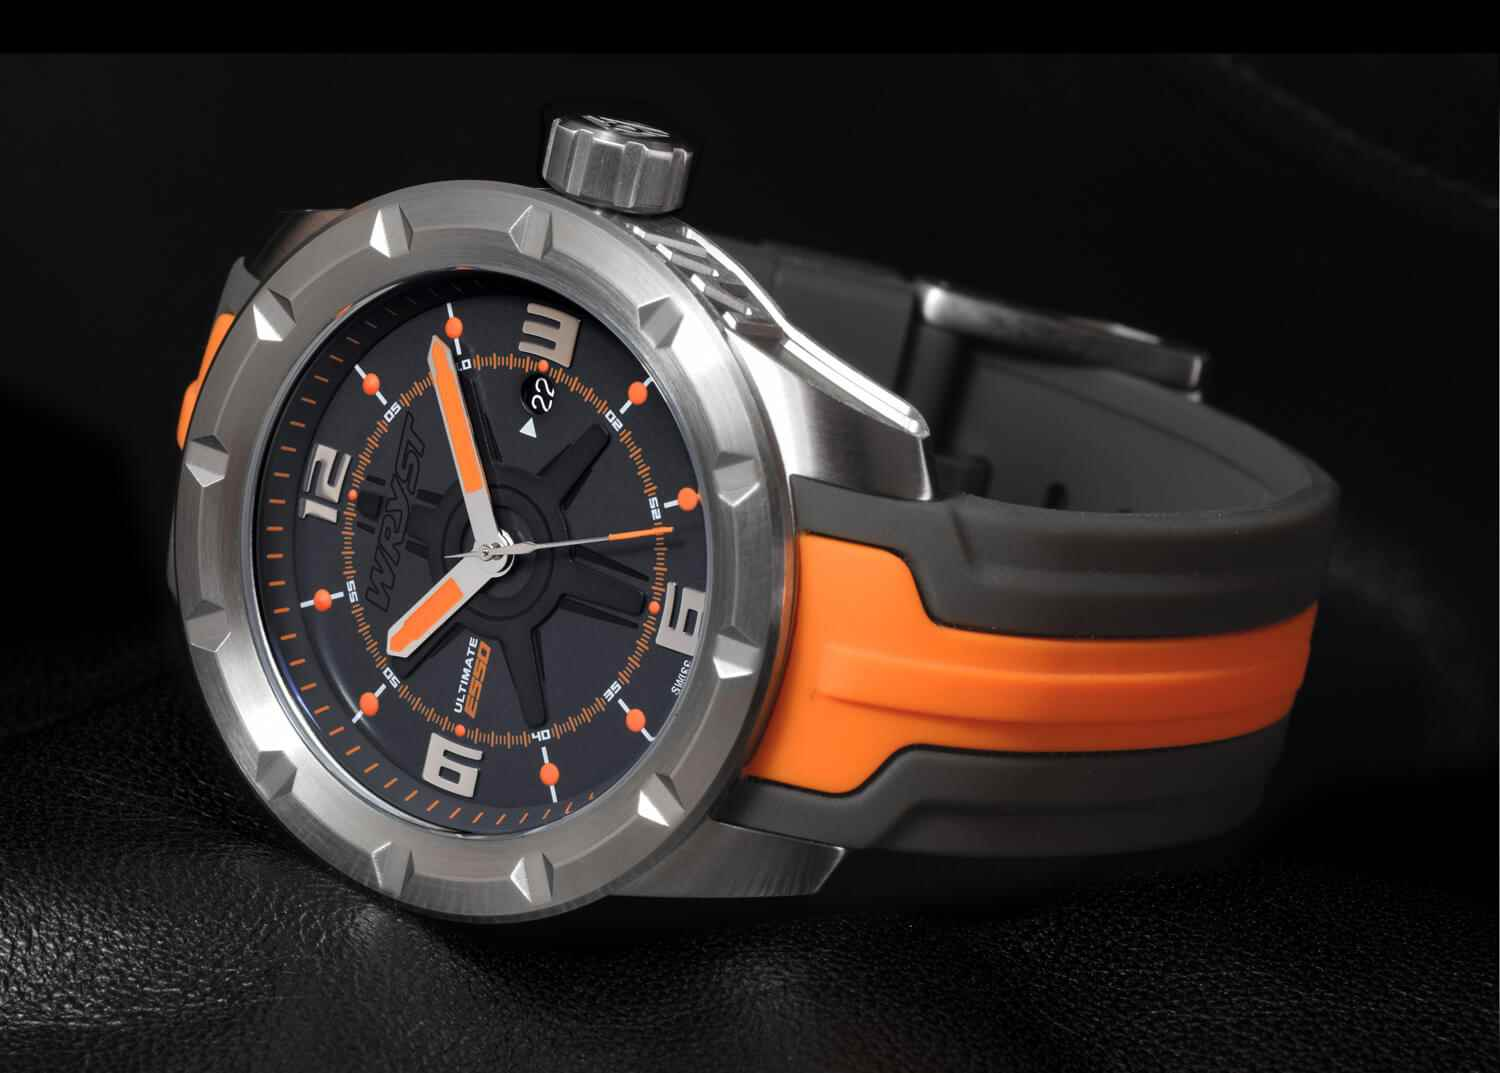 nouvelle montre de sport gris et orange 2015